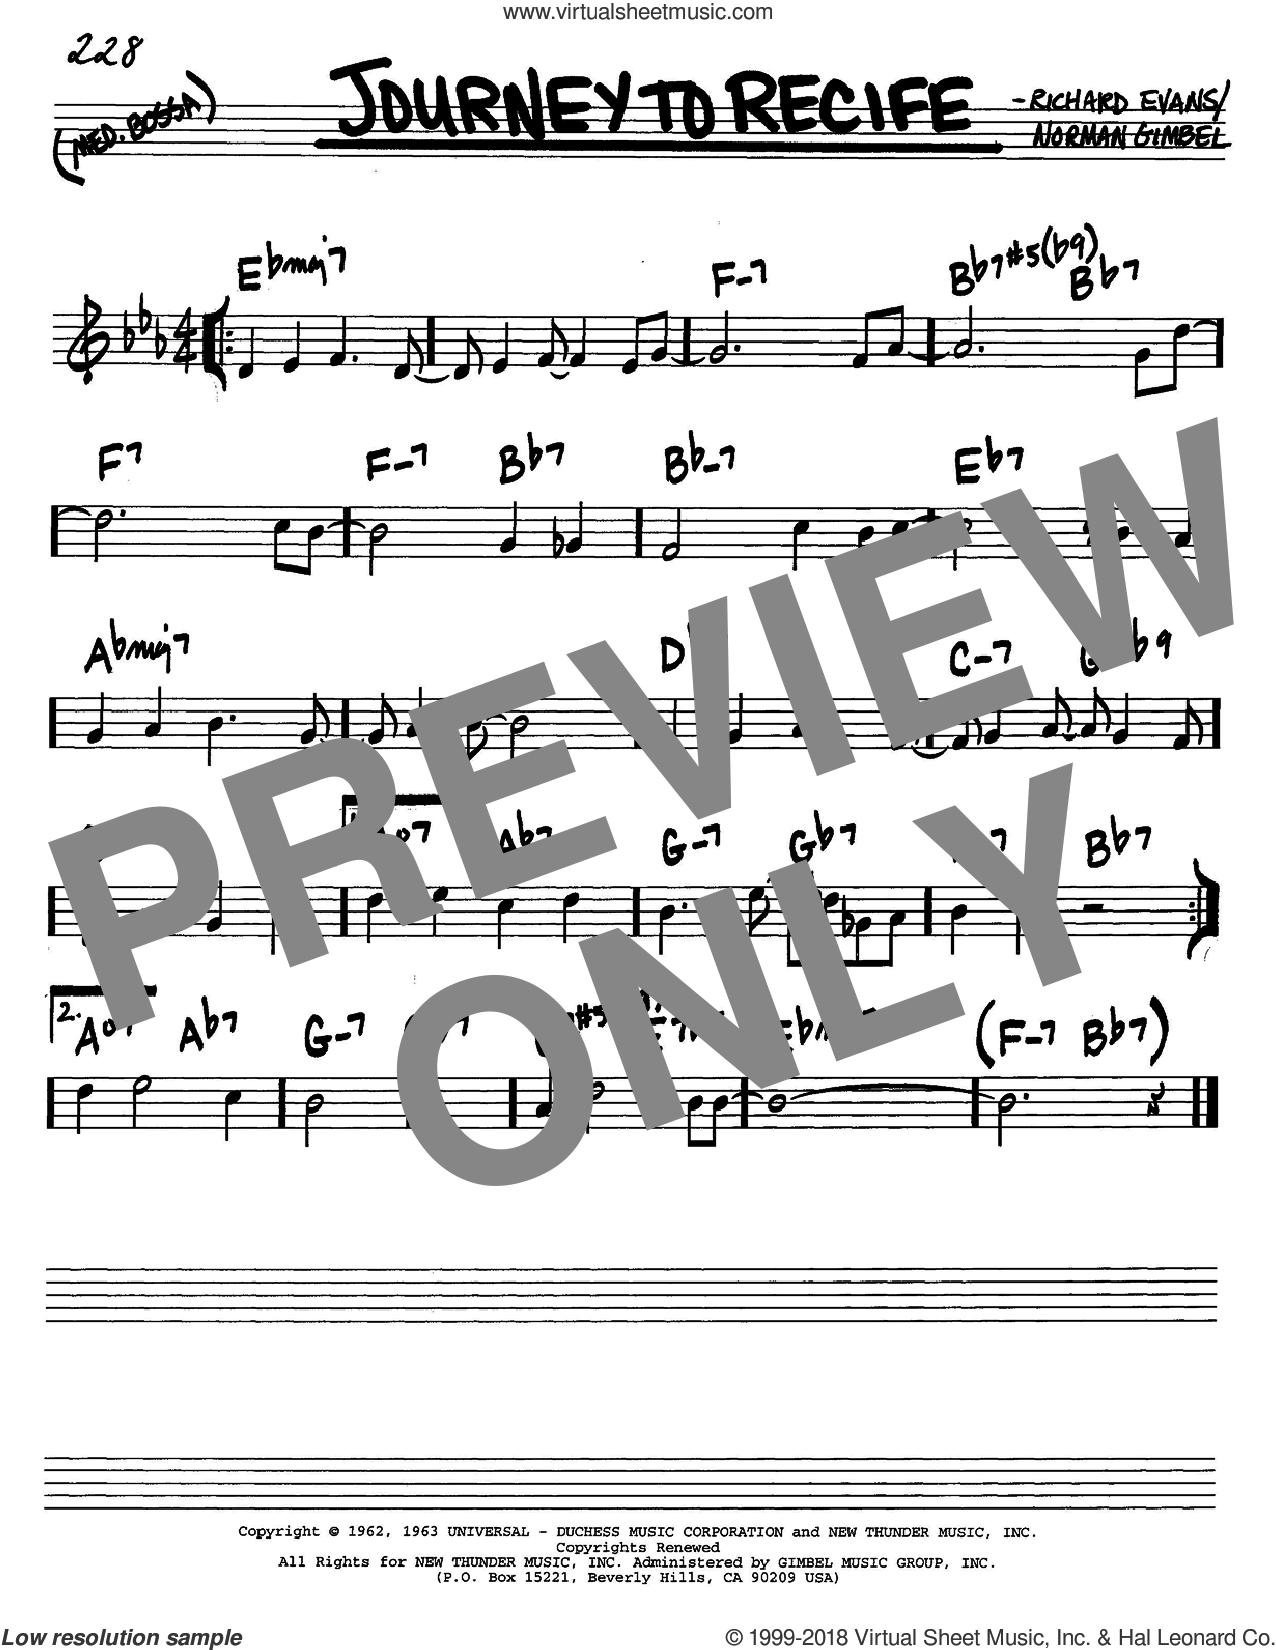 Journey To Recife sheet music for voice and other instruments (C) by Richard Evans and Norman Gimbel. Score Image Preview.